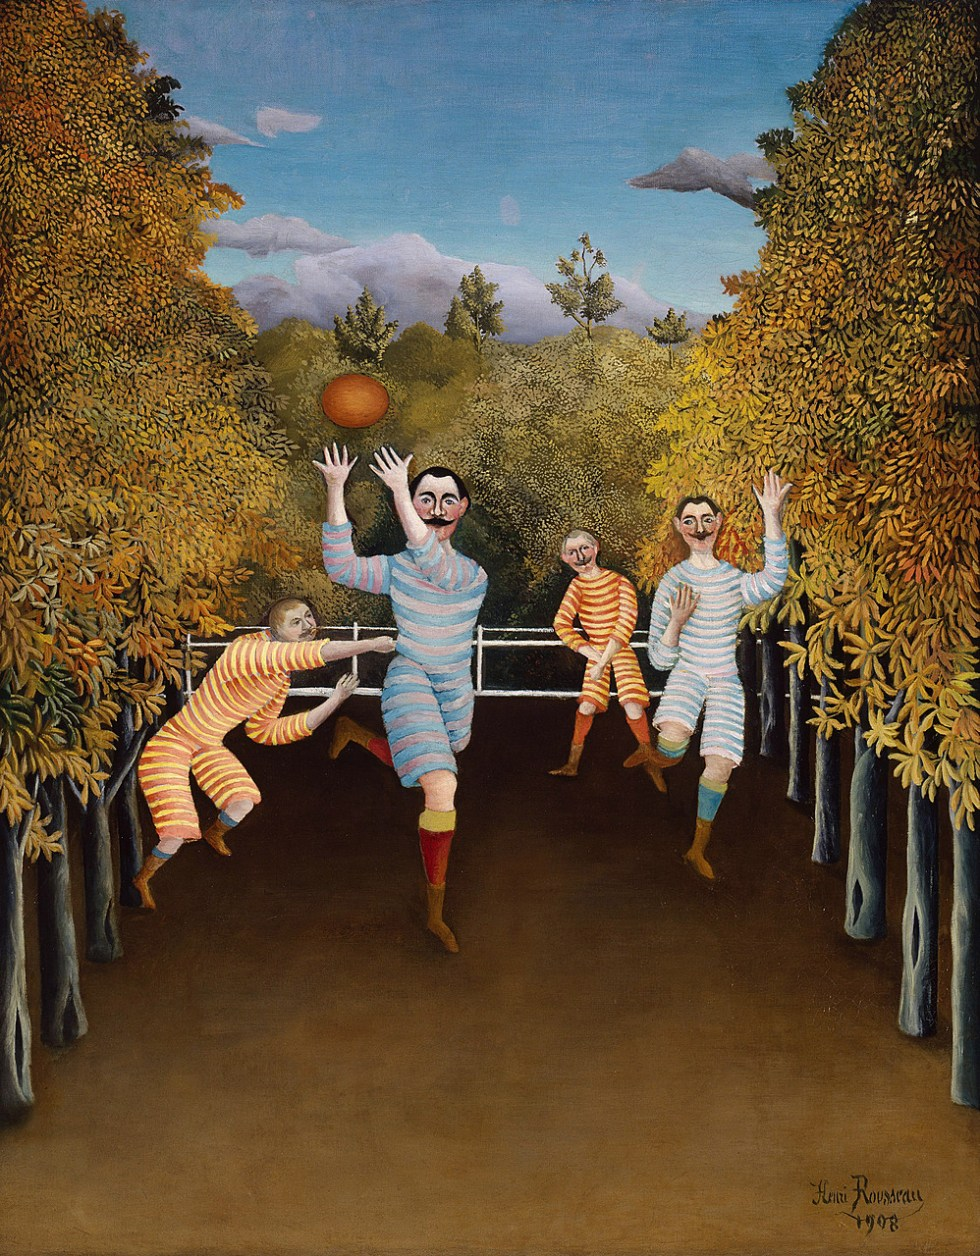 Henri Rousseau, The Football Players, 1908. Oil on canvas, 39 1/2 x 31 5/8 inches (100.3 x 80.3 cm)